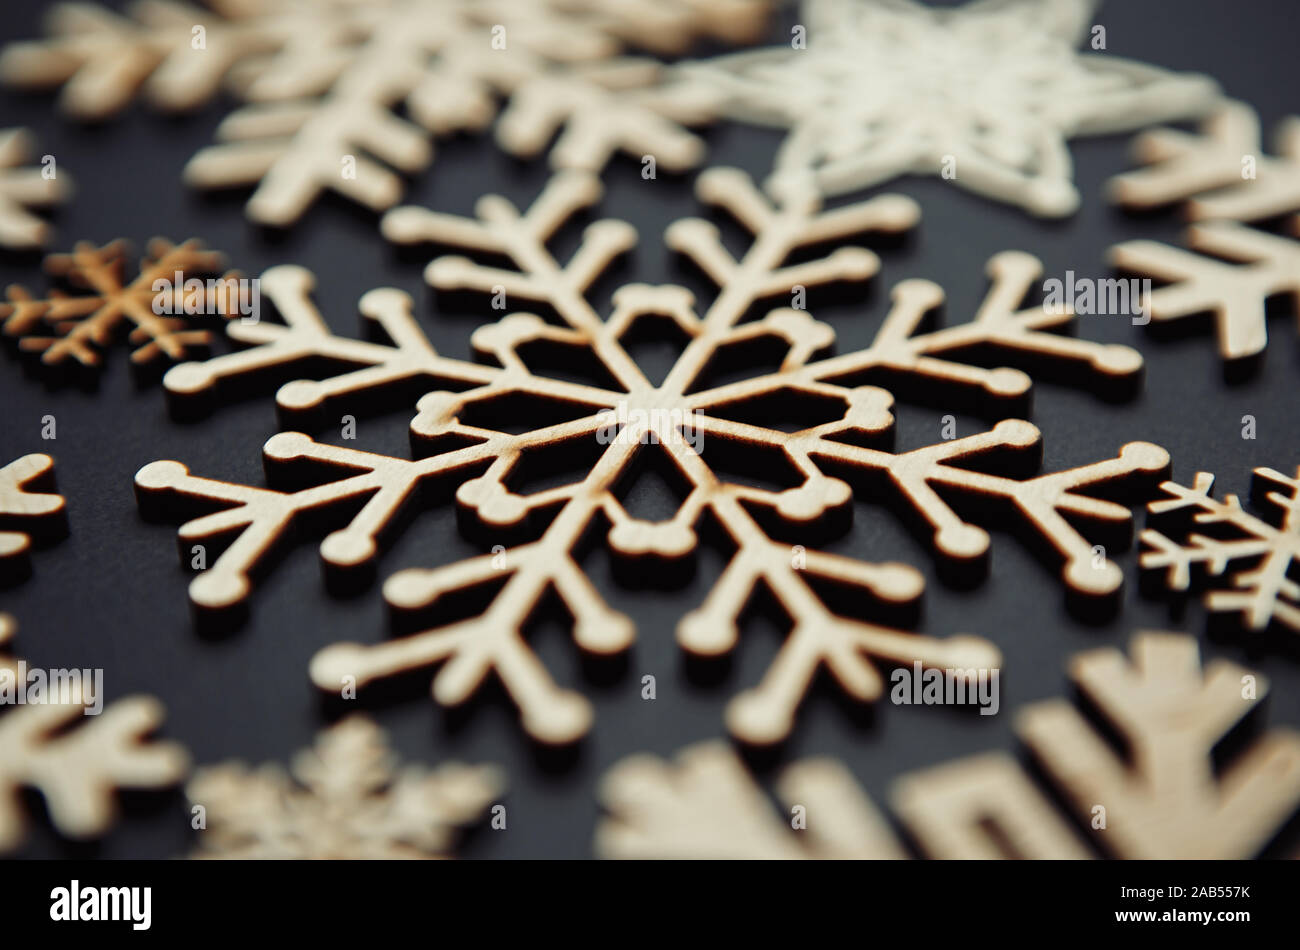 Rustic Wooden Snowflakes For Christmas Tree Decoration Handmade Crafts For Winter Holidays Celebration Home Decor For New Year Party Stock Photo Alamy